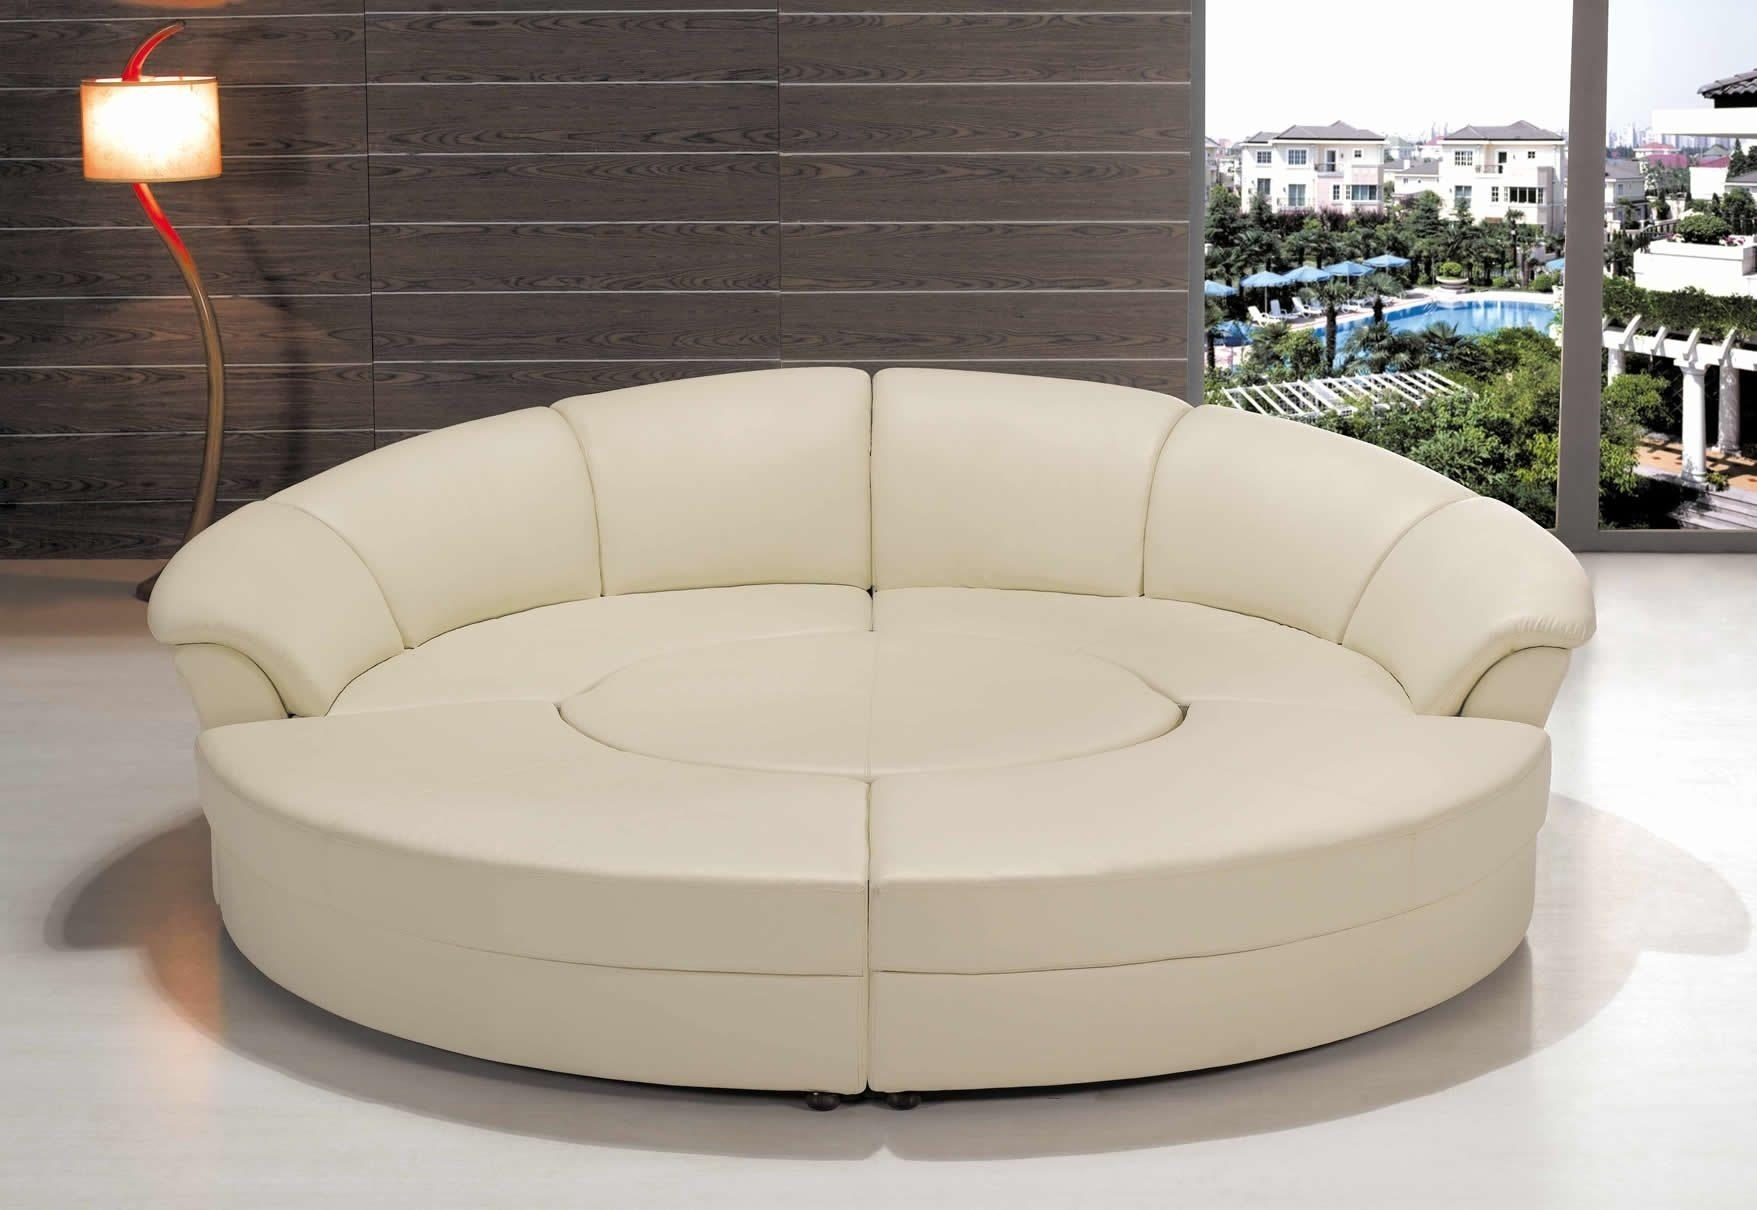 Outstanding Round Sofa Chair With Additional Famous Chair Designs With Regard To Round Sofa Chairs (Image 4 of 20)